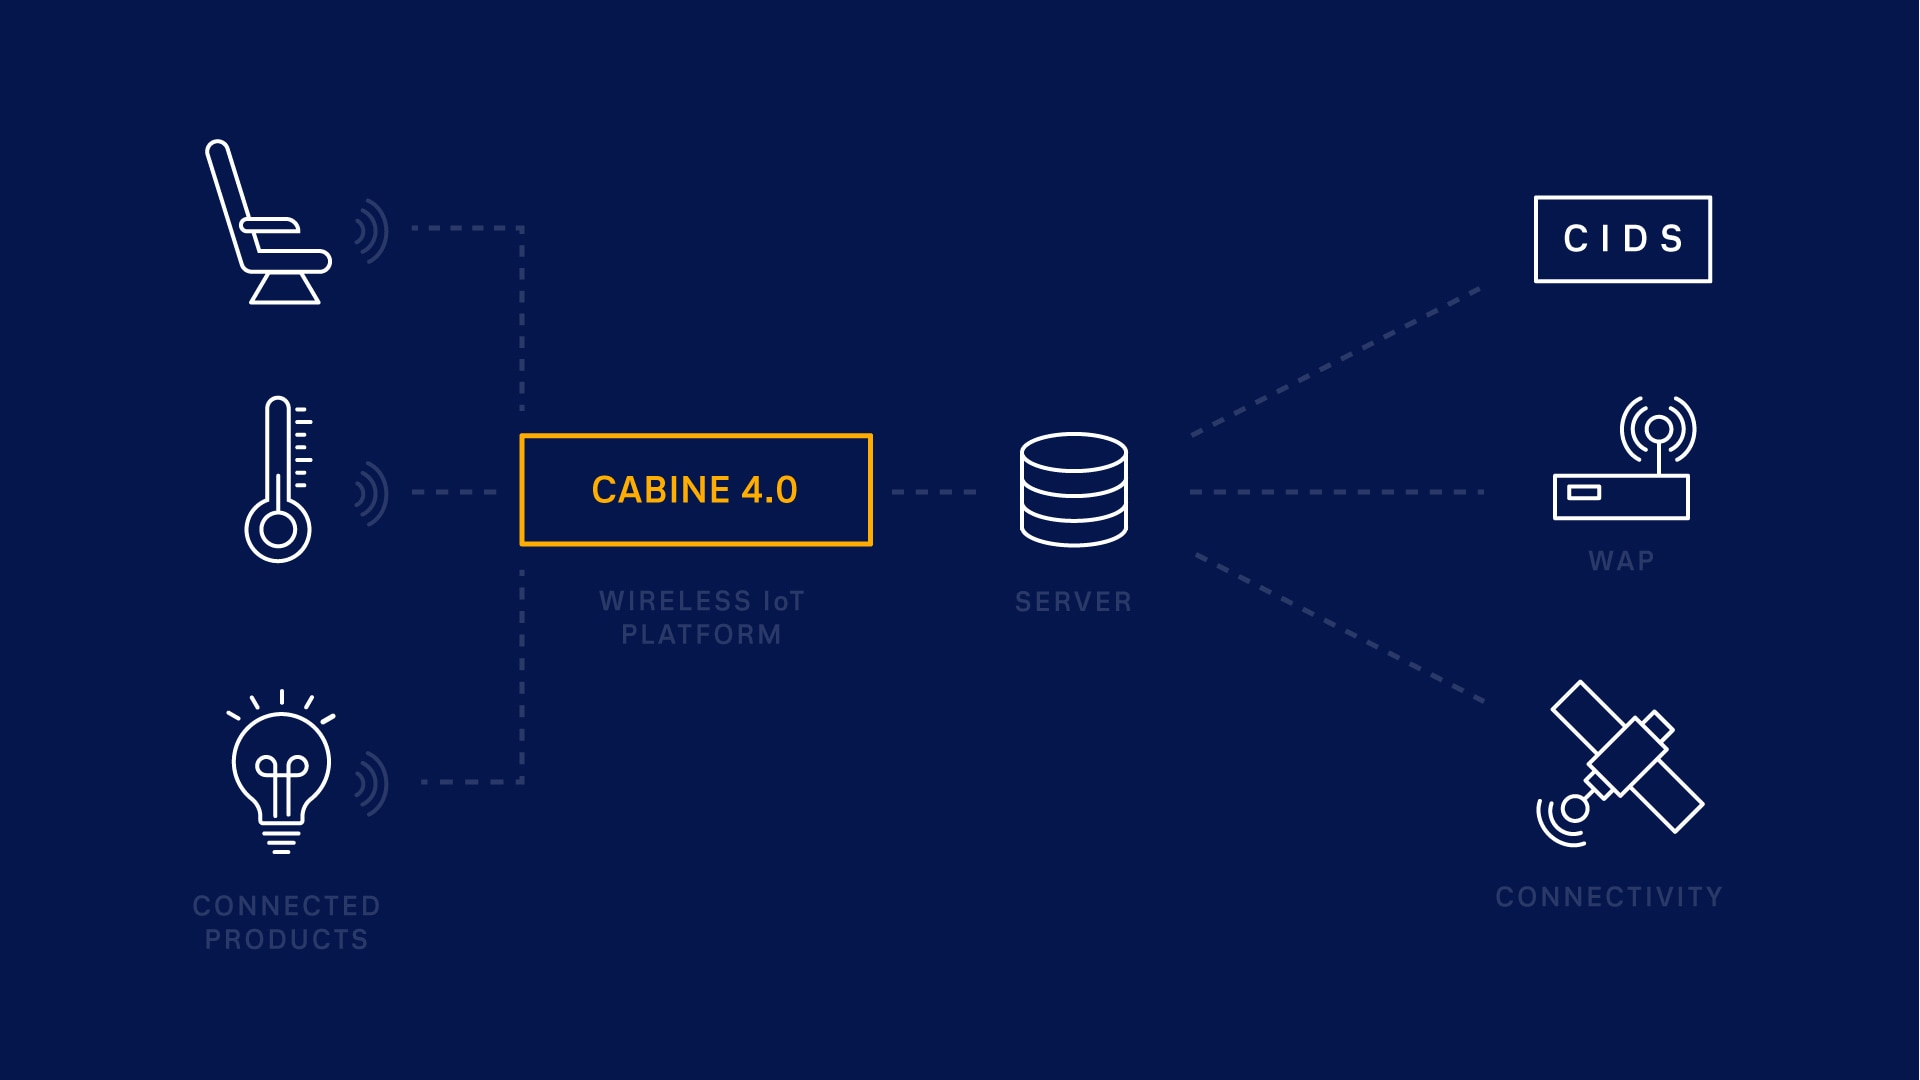 infograph for cabin 4.0